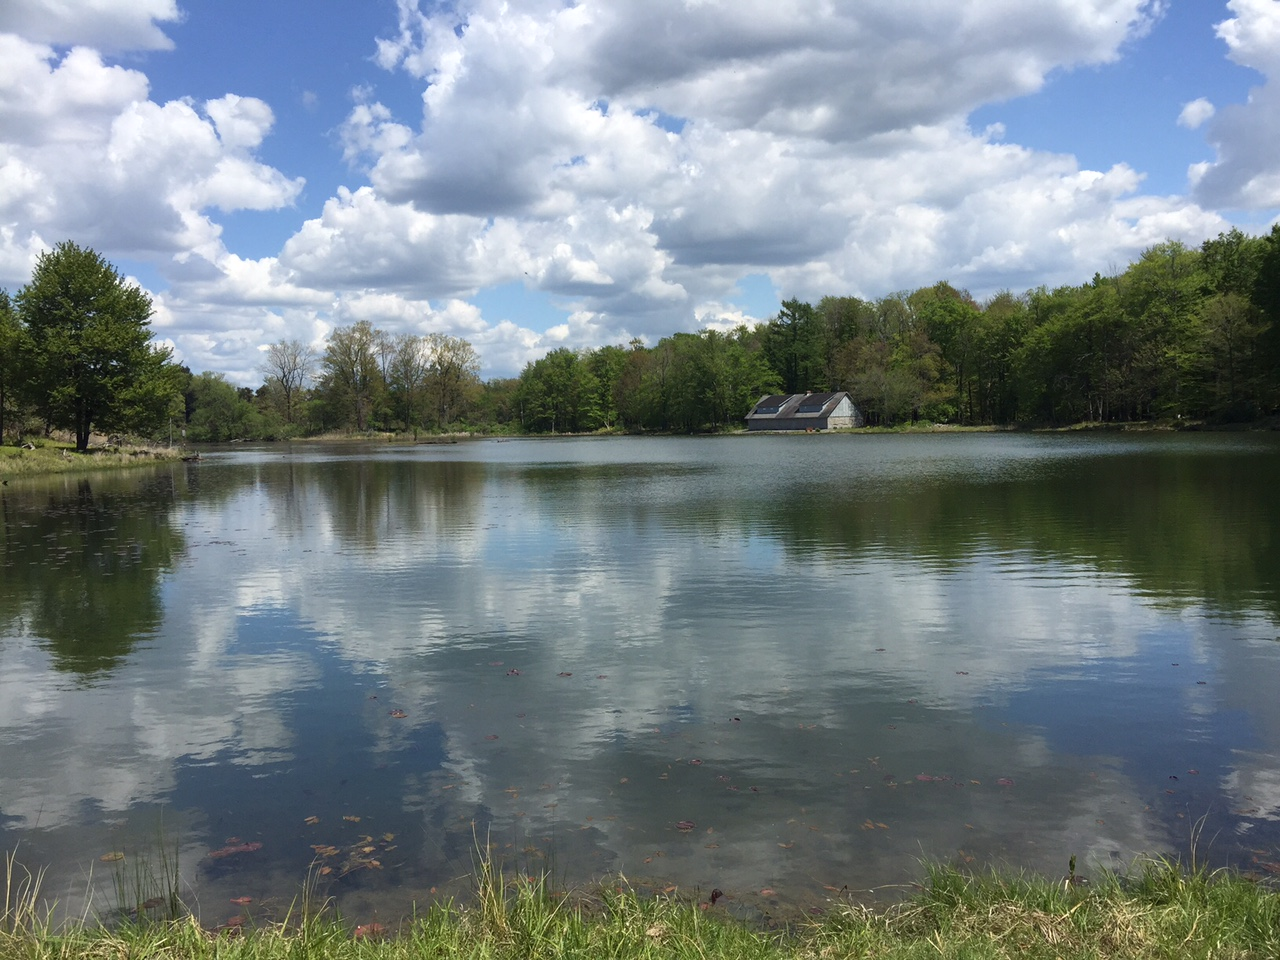 Reinstein Woods offers 292 acres of woods and wetlands. Mary Friona-Celani/Special to The News